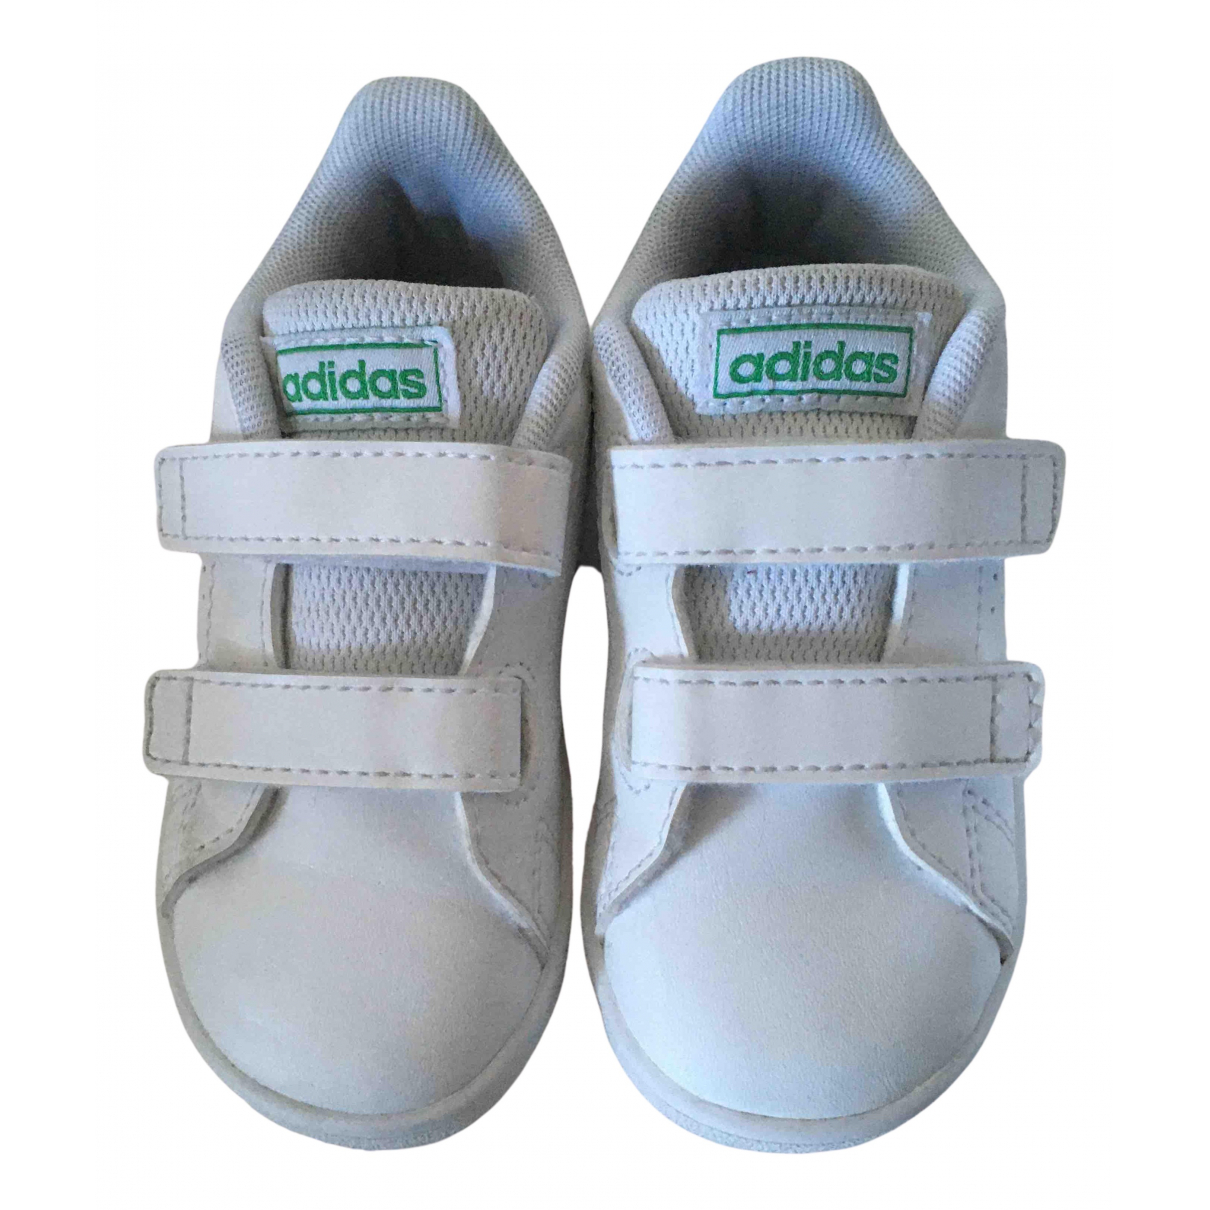 Adidas N White Leather Trainers for Kids 23 FR